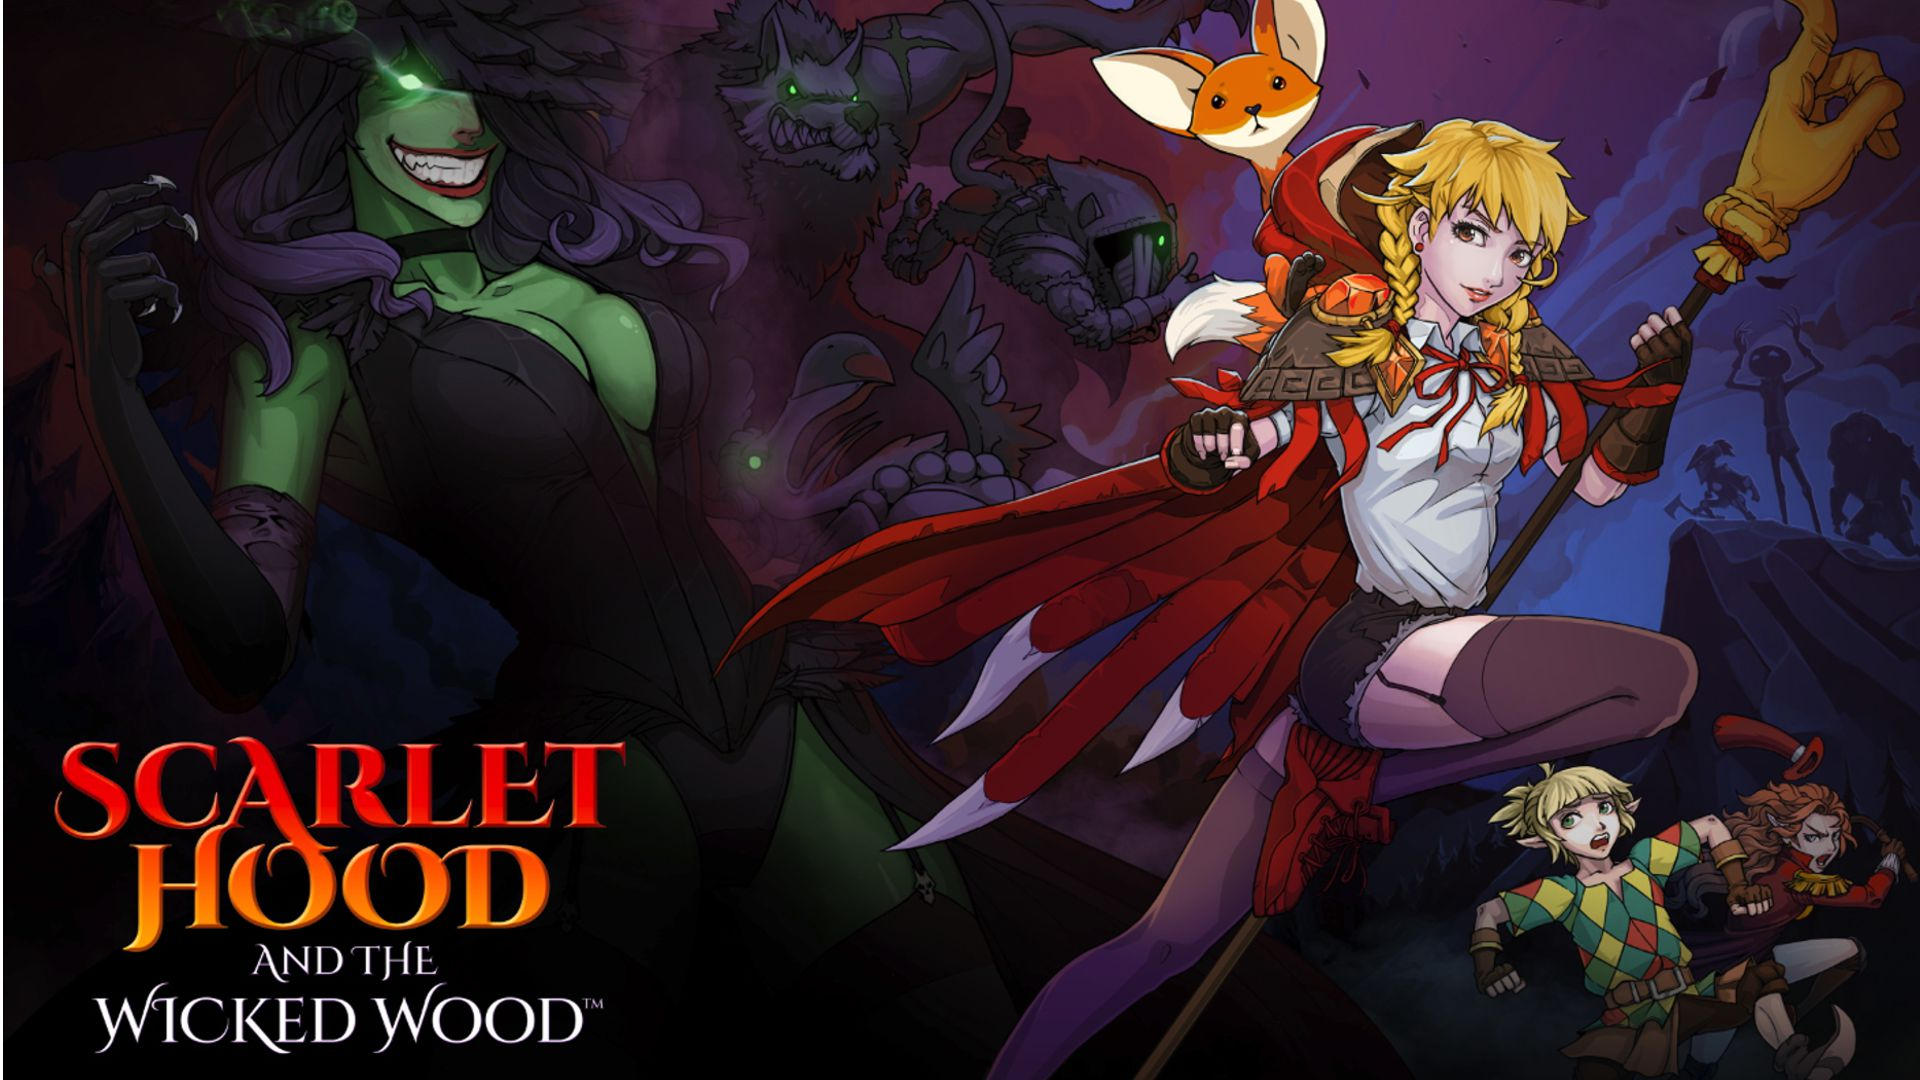 Scarlet Hood and the Wicked Wood Principal